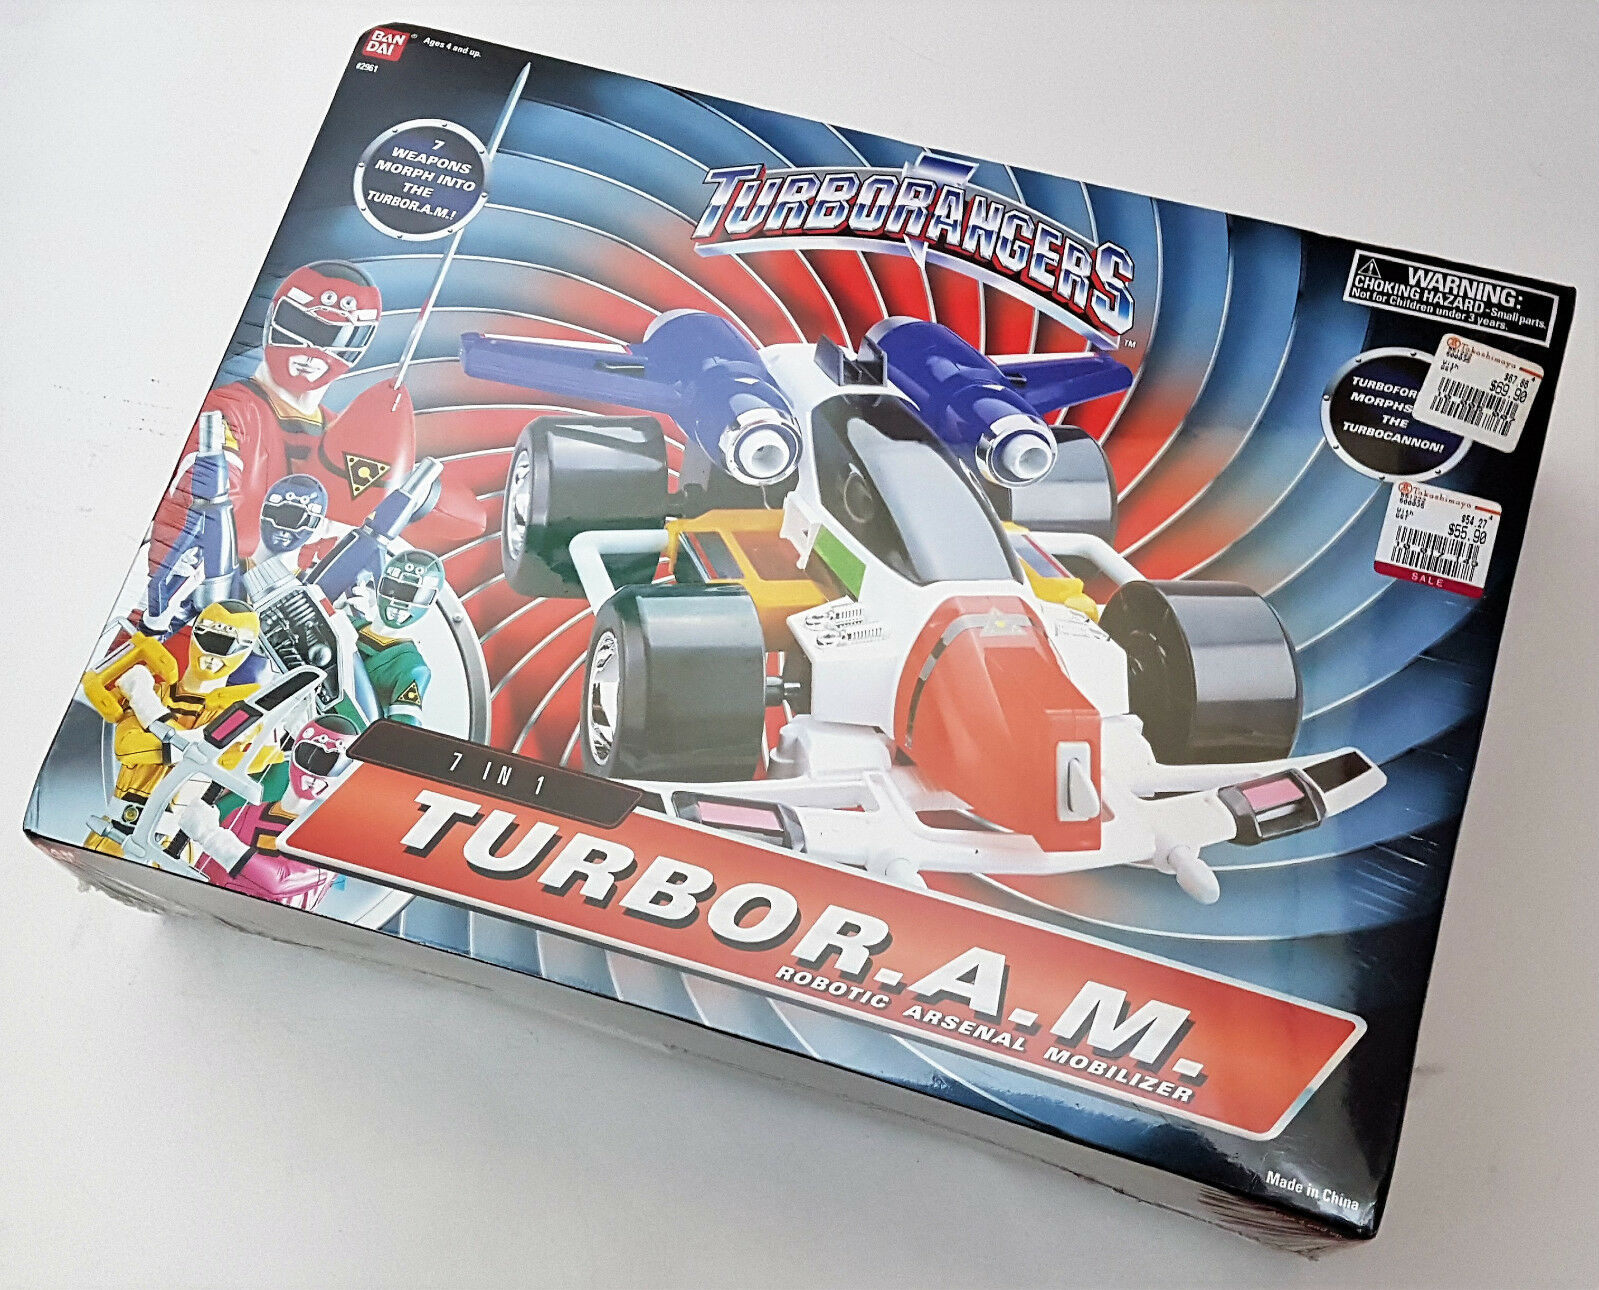 Bandai Power Rangers Turbo 7 In 1 Turbo R.A.M. Robotic Arsenal Mobilizer (New)